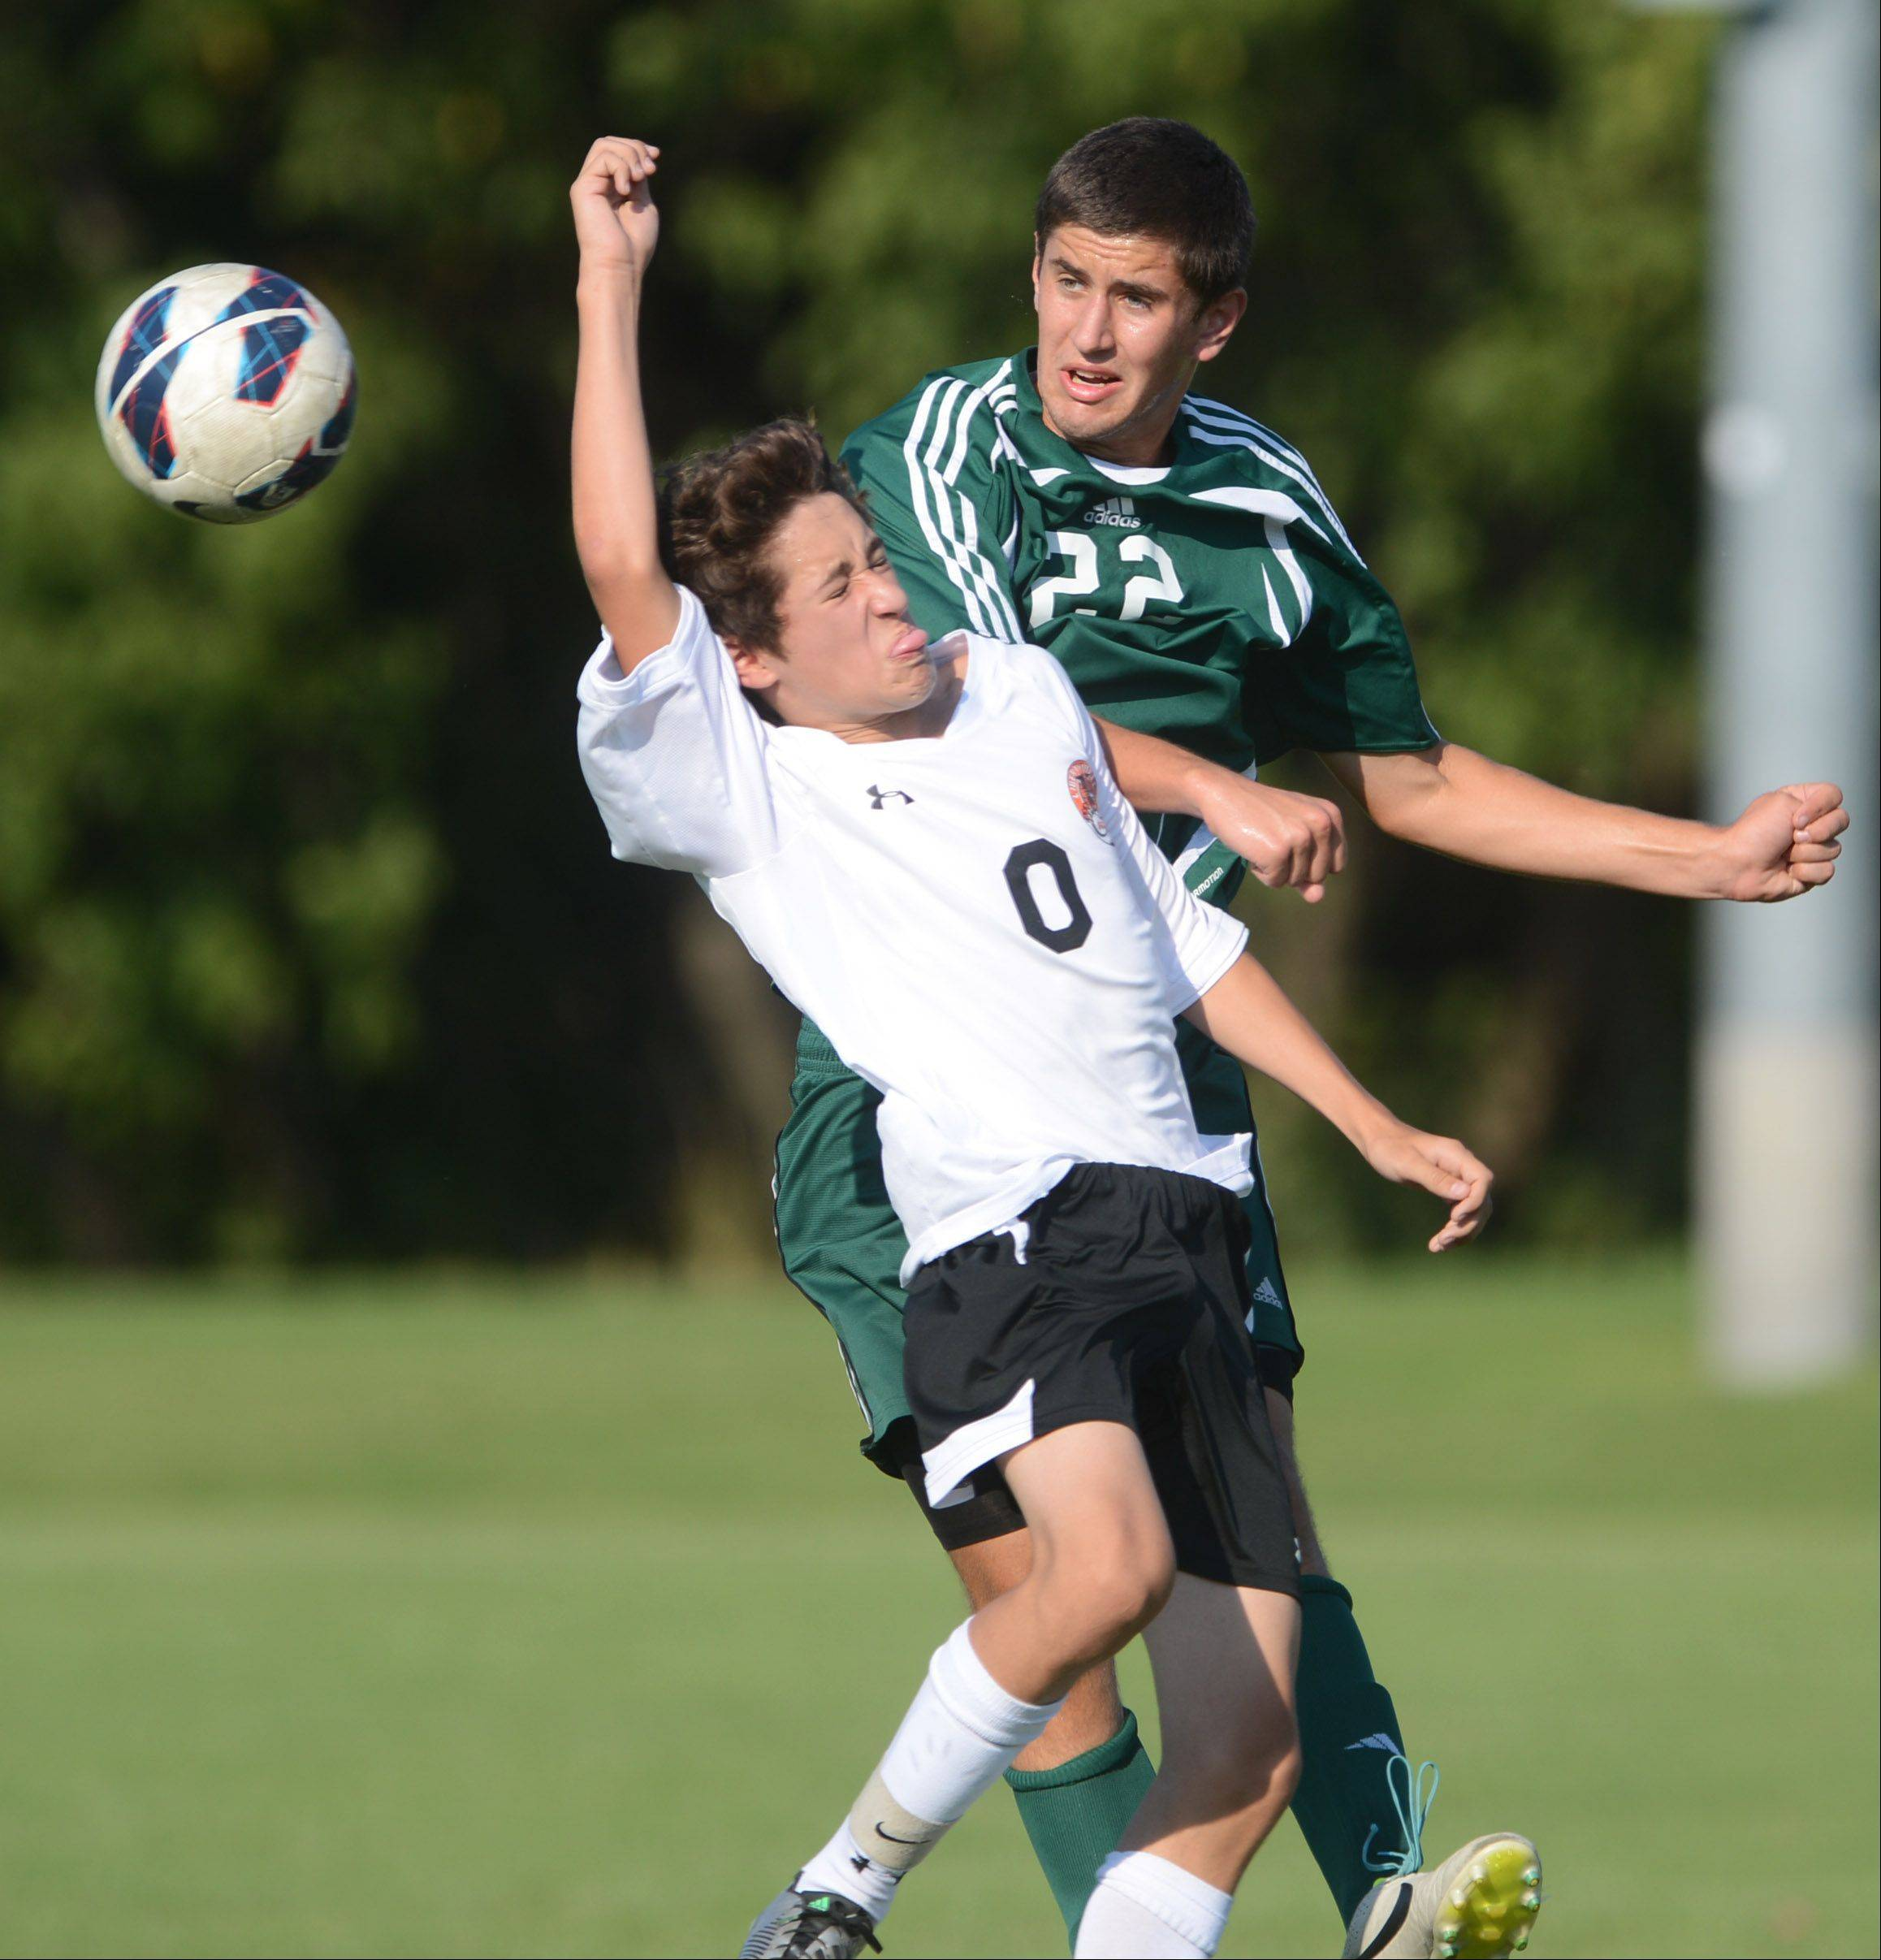 Libertyville's Kenny Gallagher (0) and Stevenson's Ethan Marx collide while chasing down a loose ball during Tuesday's soccer match in Libertville.